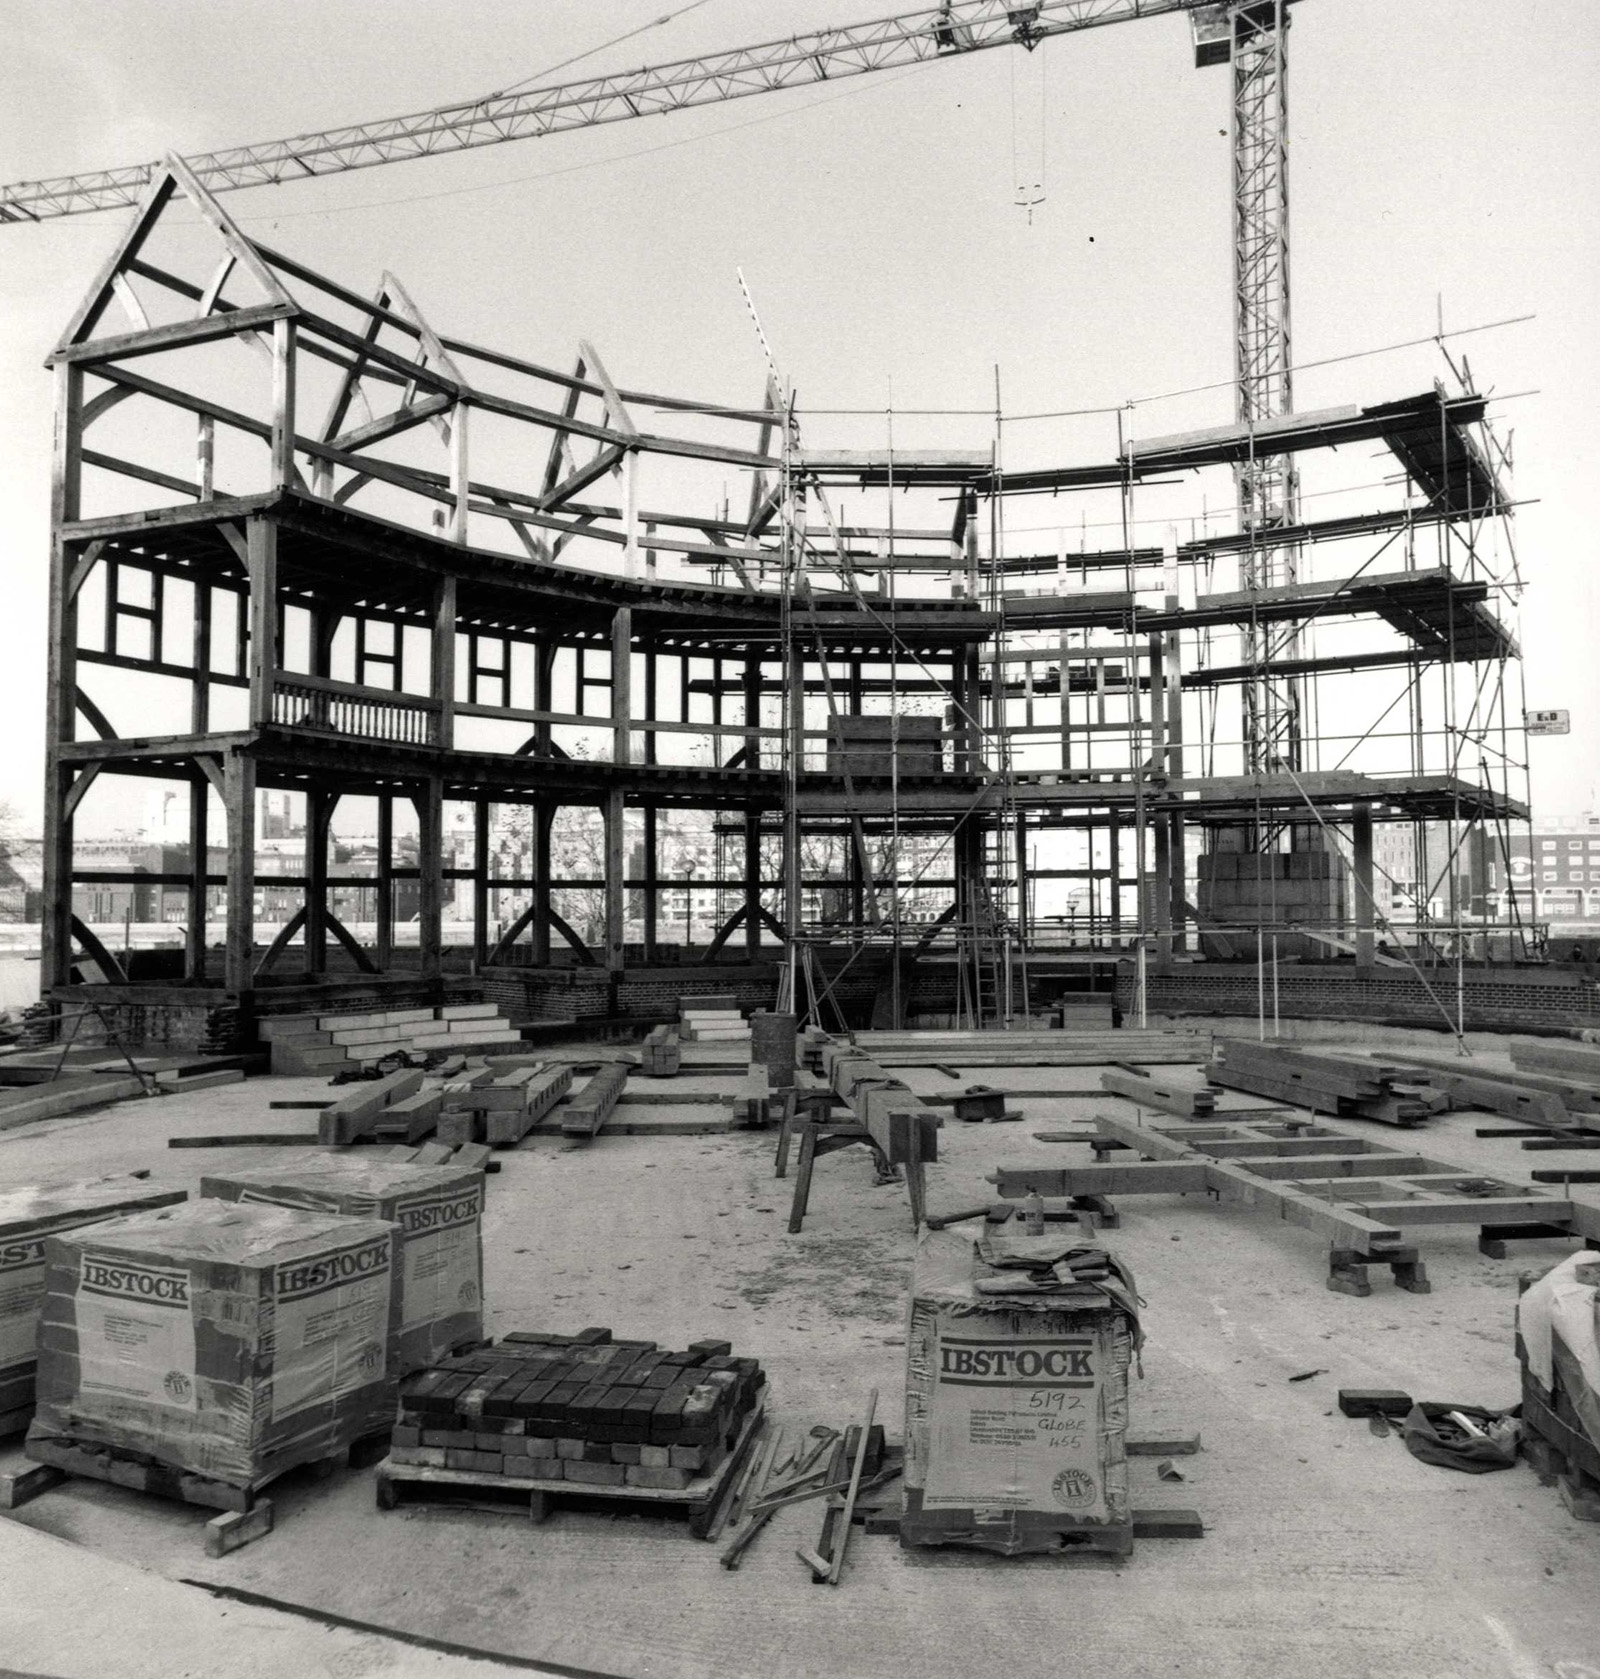 A timber circular structure starts to take shape on a construction site, with a crane in the background.